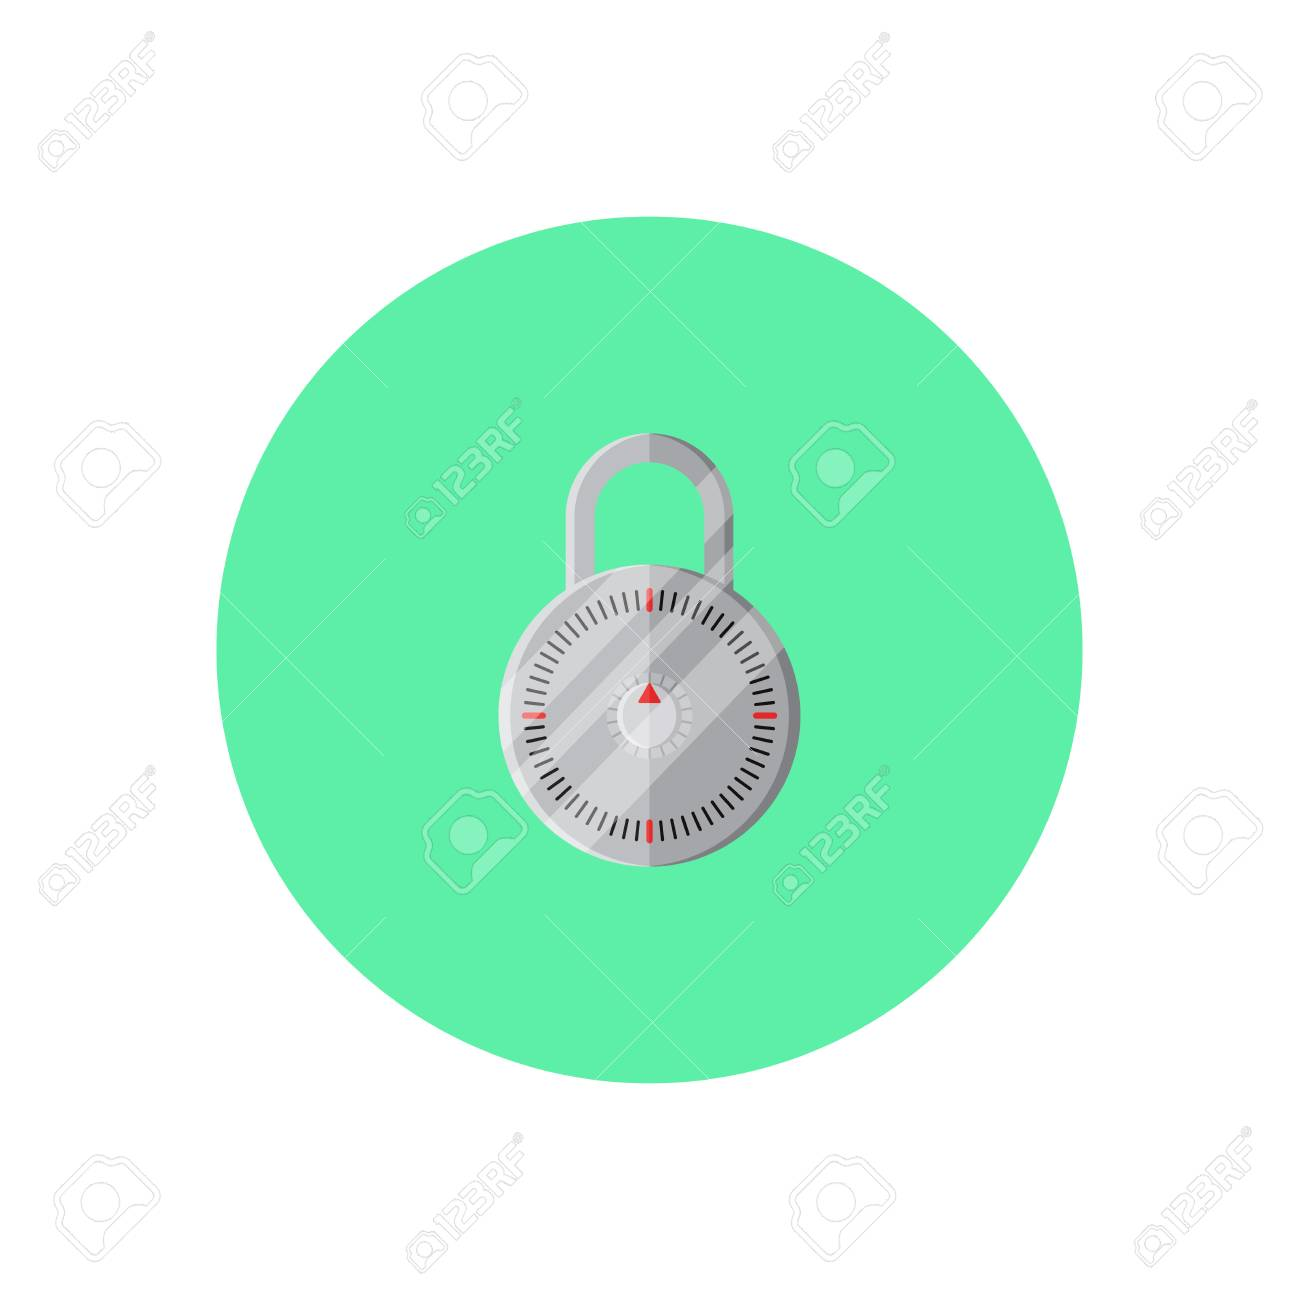 Padlock In Green Round On Background Vector Concept Lock Illustration